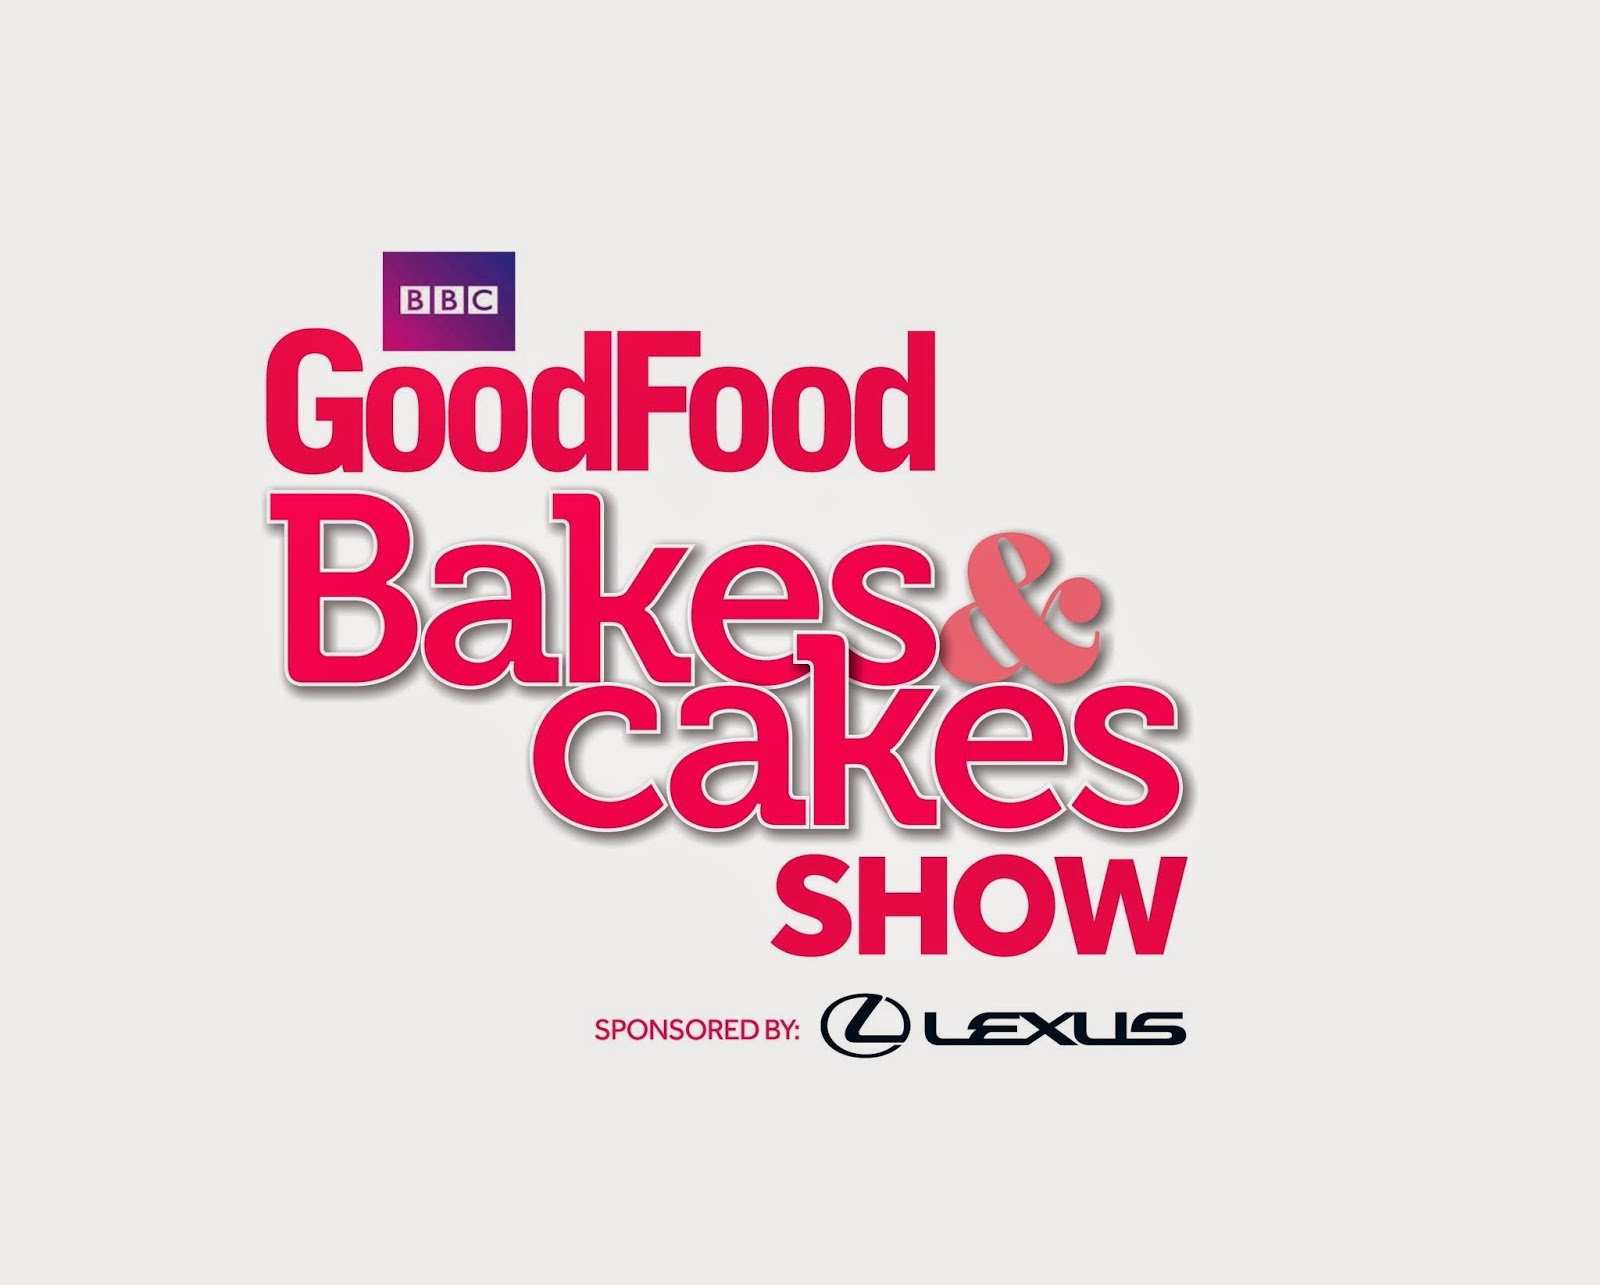 MATTYB BAKES OFFERS - 25% OFF TICKETS TO THE BBC GOOD FOOD BAKES AND CAKE SHOW